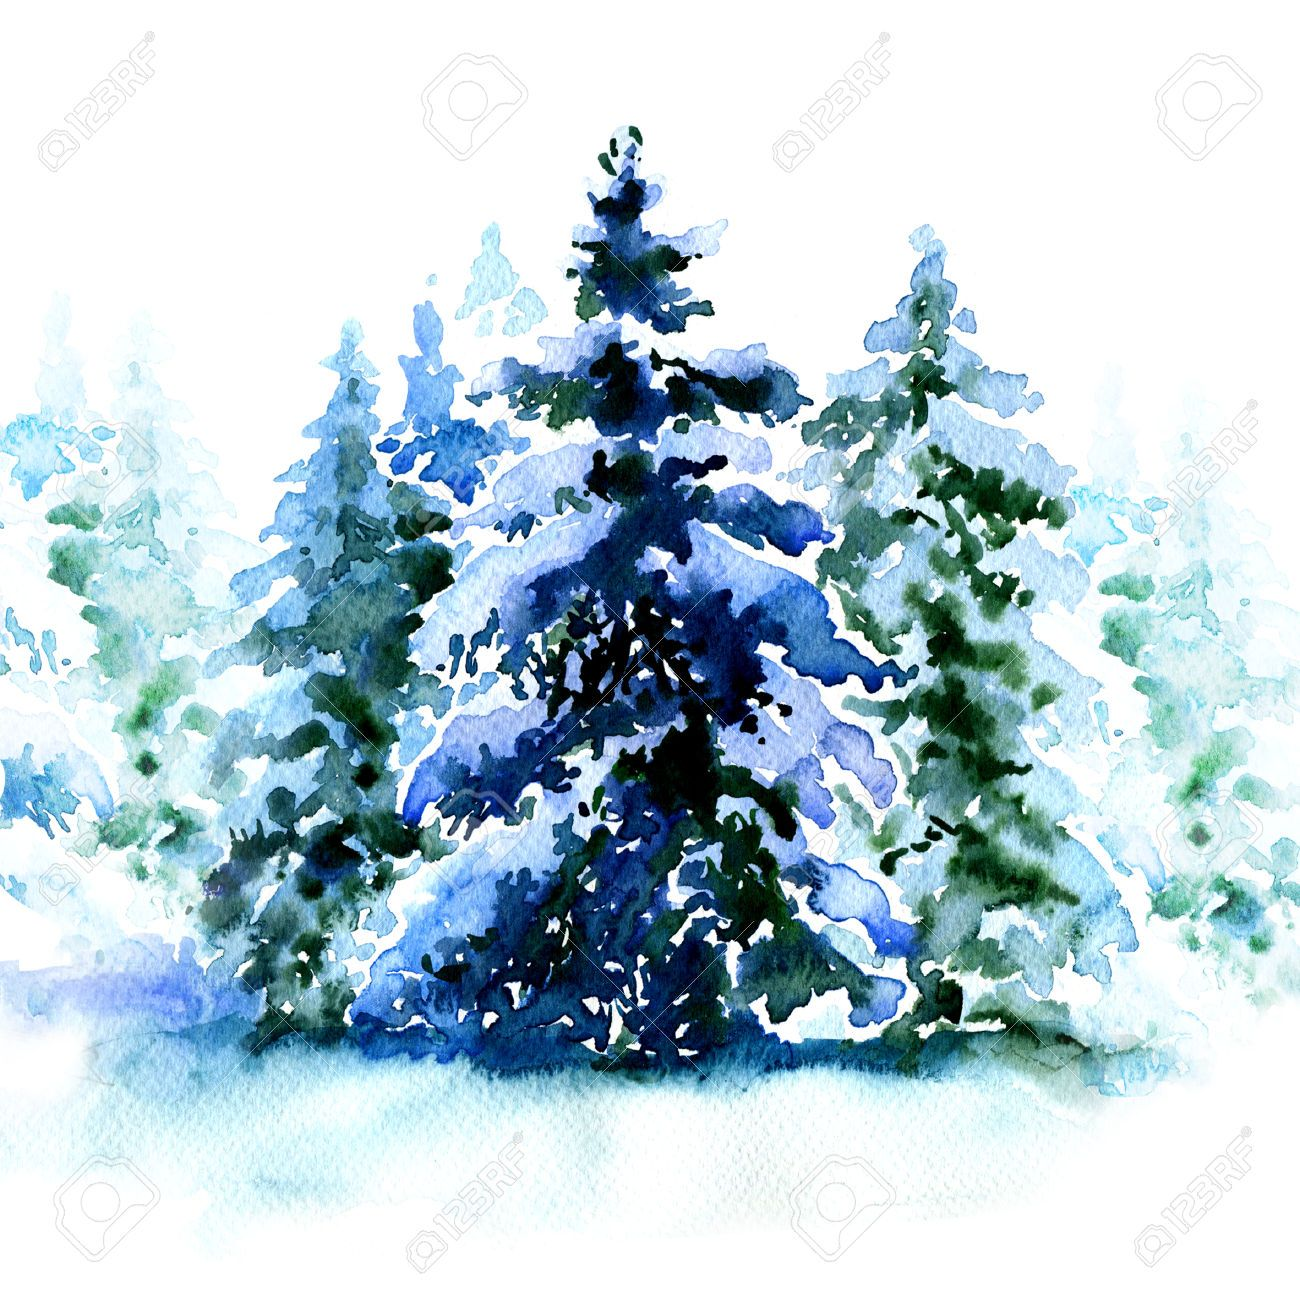 47983431 Group Of Christmas Trees Covered Snow In Winter Isolated